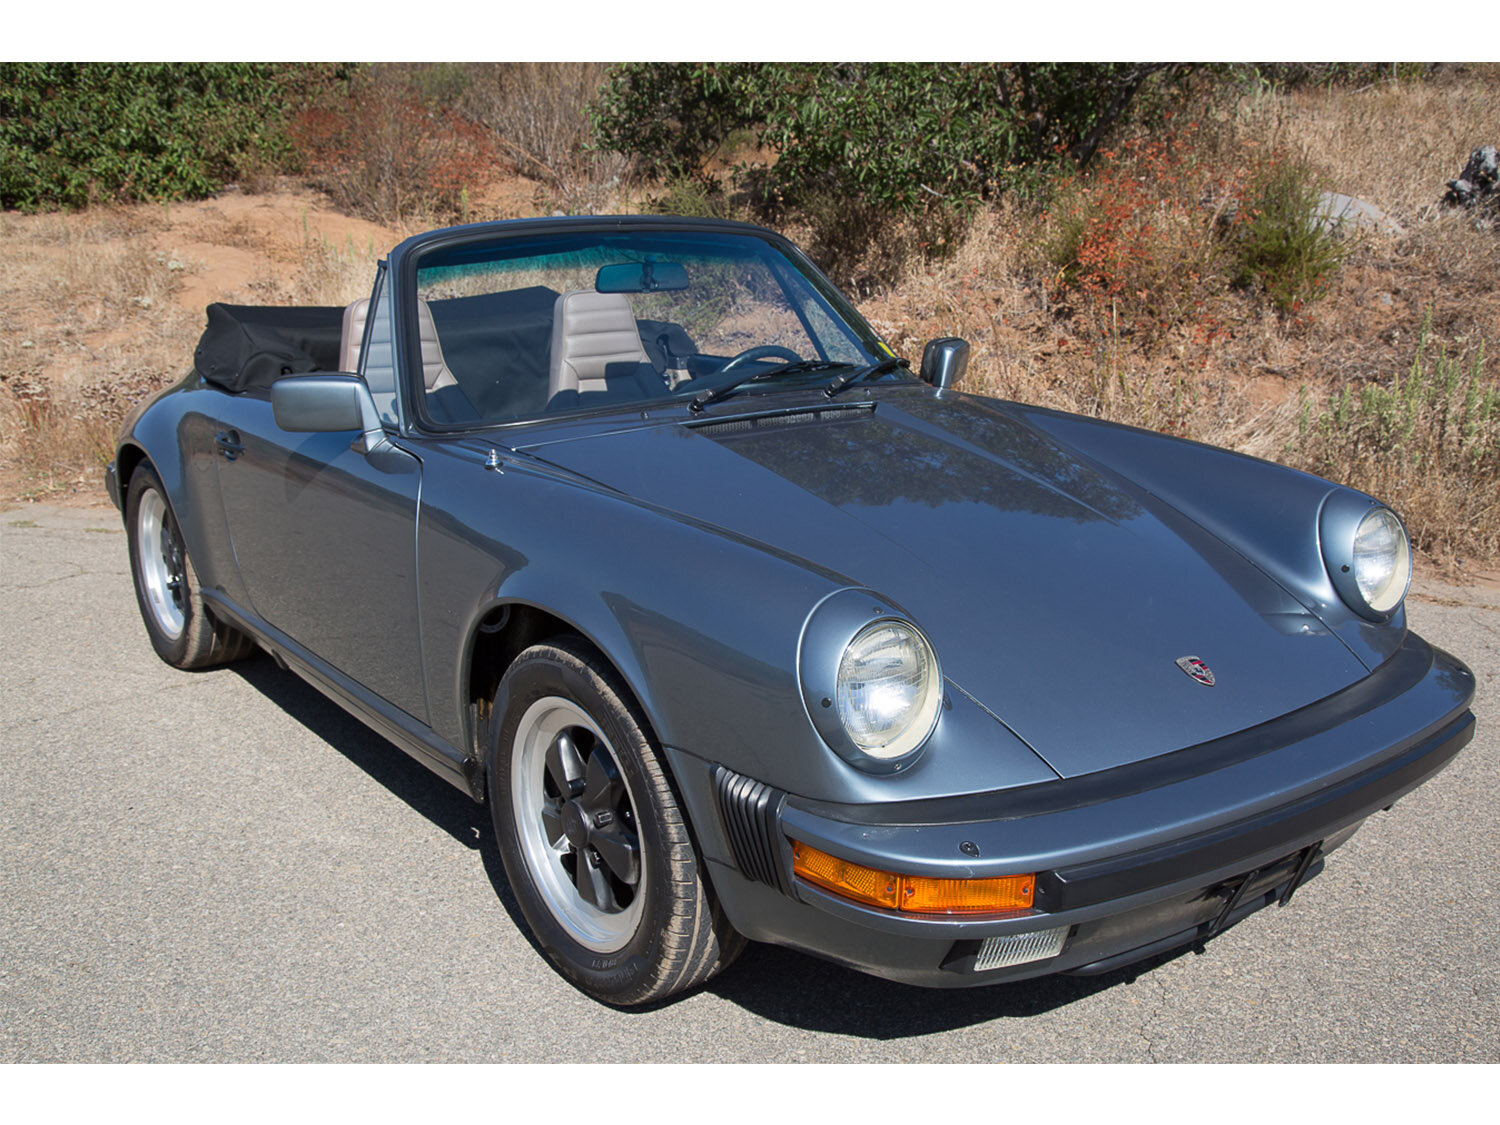 1984-carrera-cabriolet-slate-blue-911-sc-for-sale-makellos-classics_0001s_0000s_0000_1B7A6650.jpg